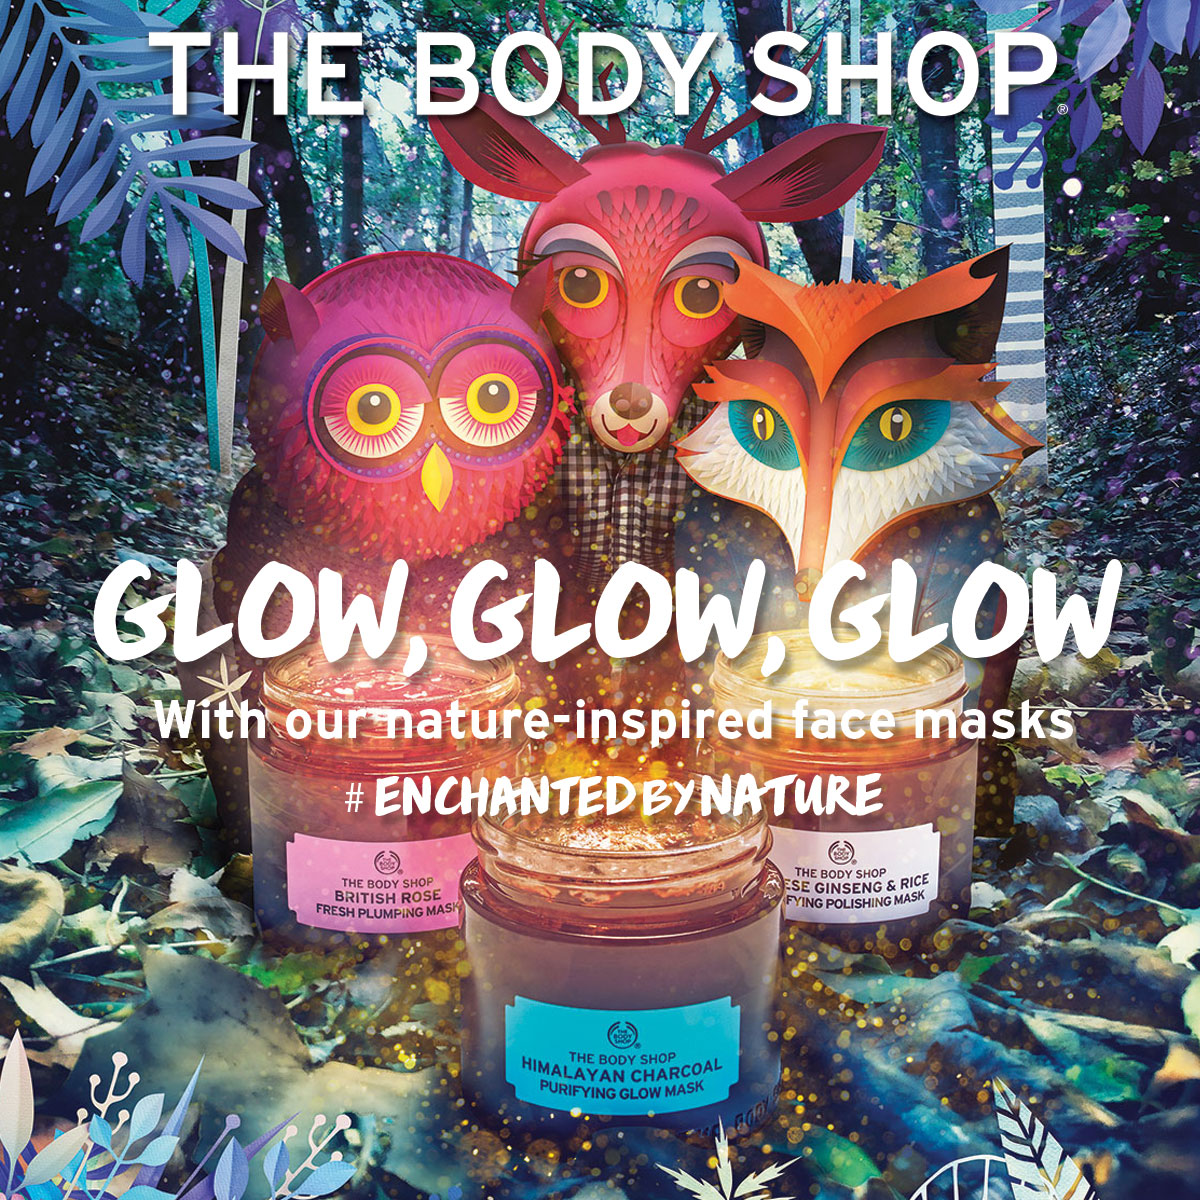 The Body Shop Pre-Christmas Promotion